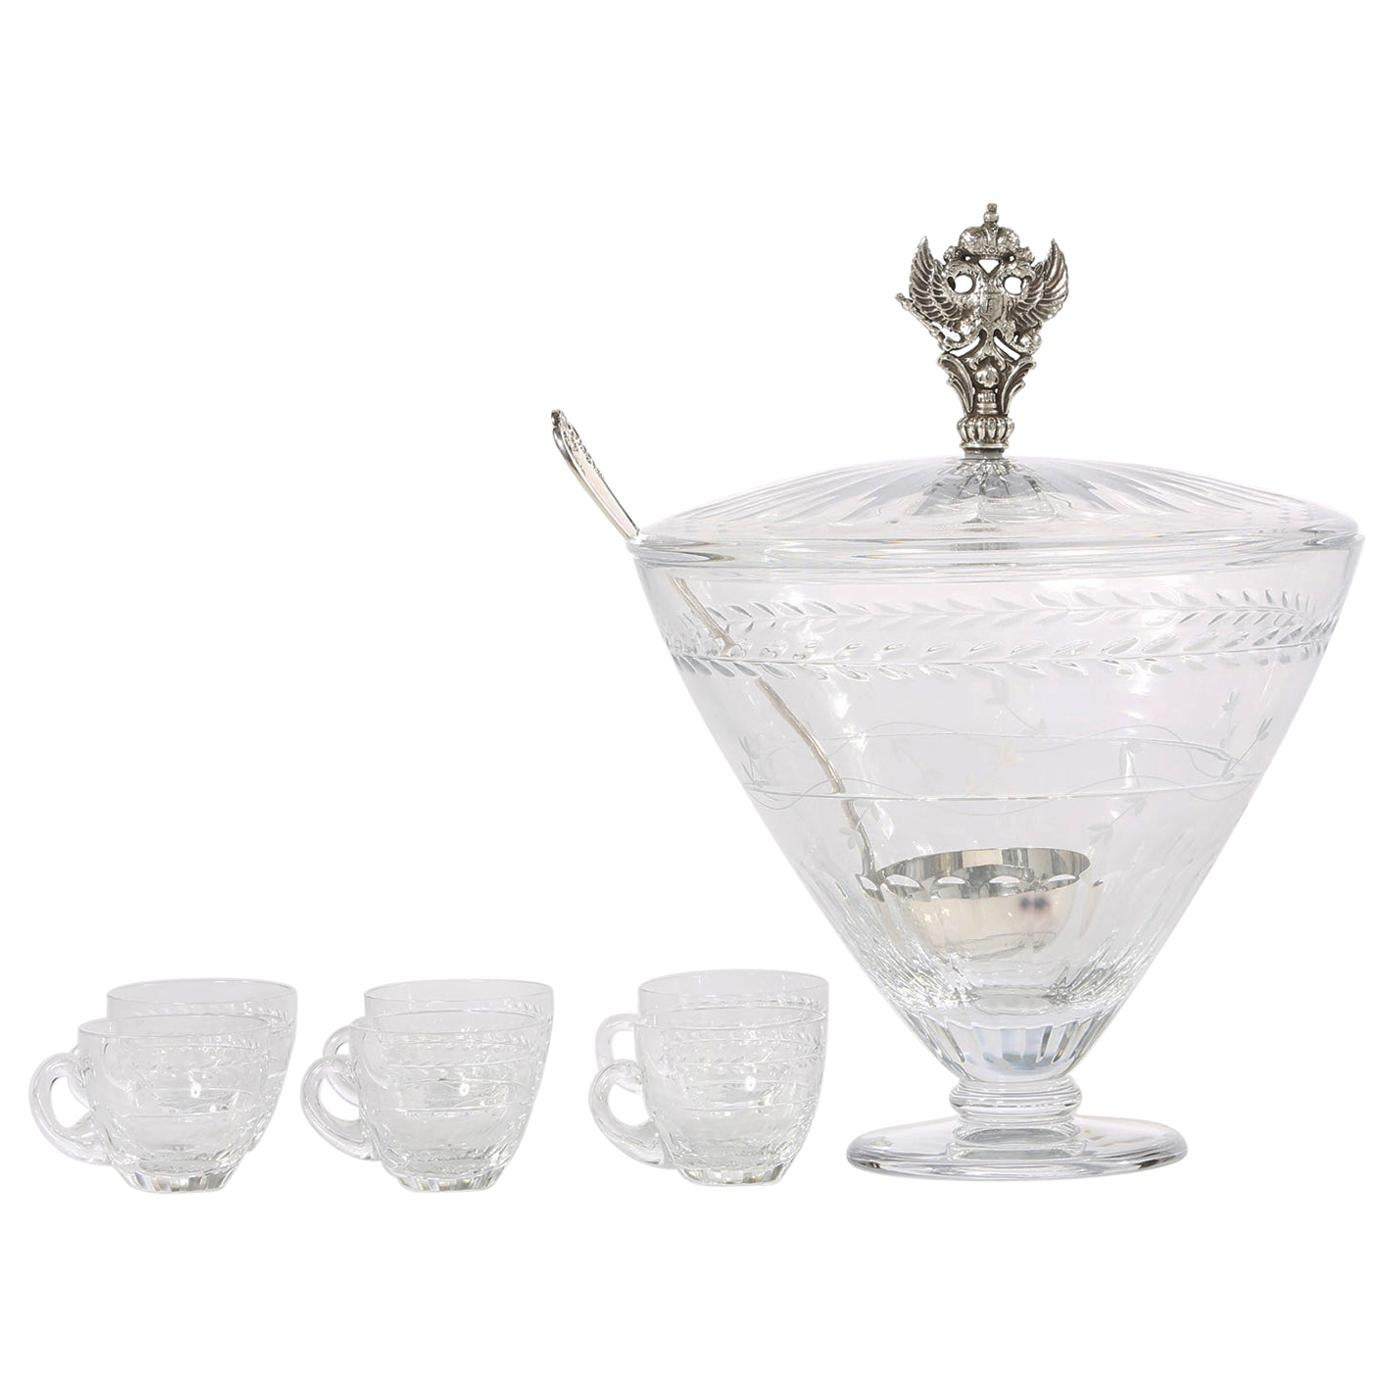 Large Cut Crystal Covered Punch Bowl Service / 8 People